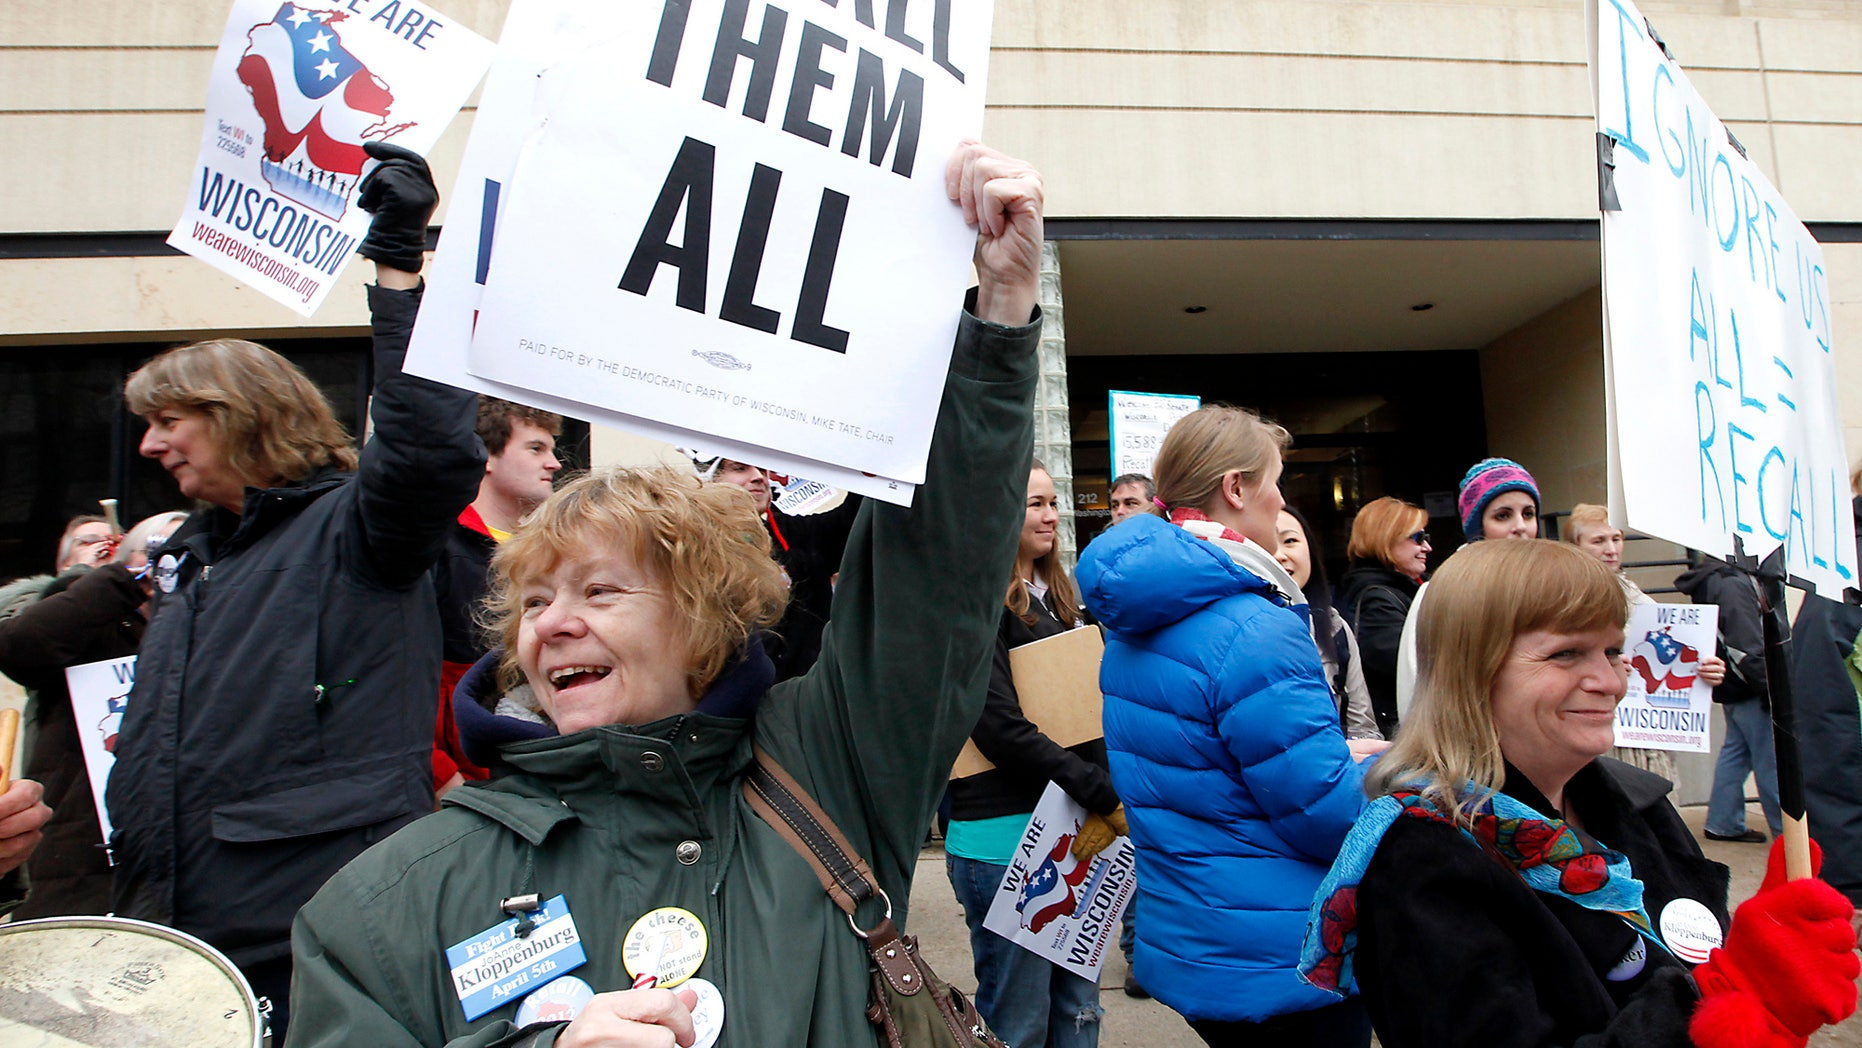 This April 1, 2011 file photo shows Chris Taylor, left, and Peppi Elder, right, joining demonstrators calling for the recall of State Sen. Dan Kapanke, R-LaCrosse, outside the Wisconsin Government Accountability Board in Madison, Wis. (AP)